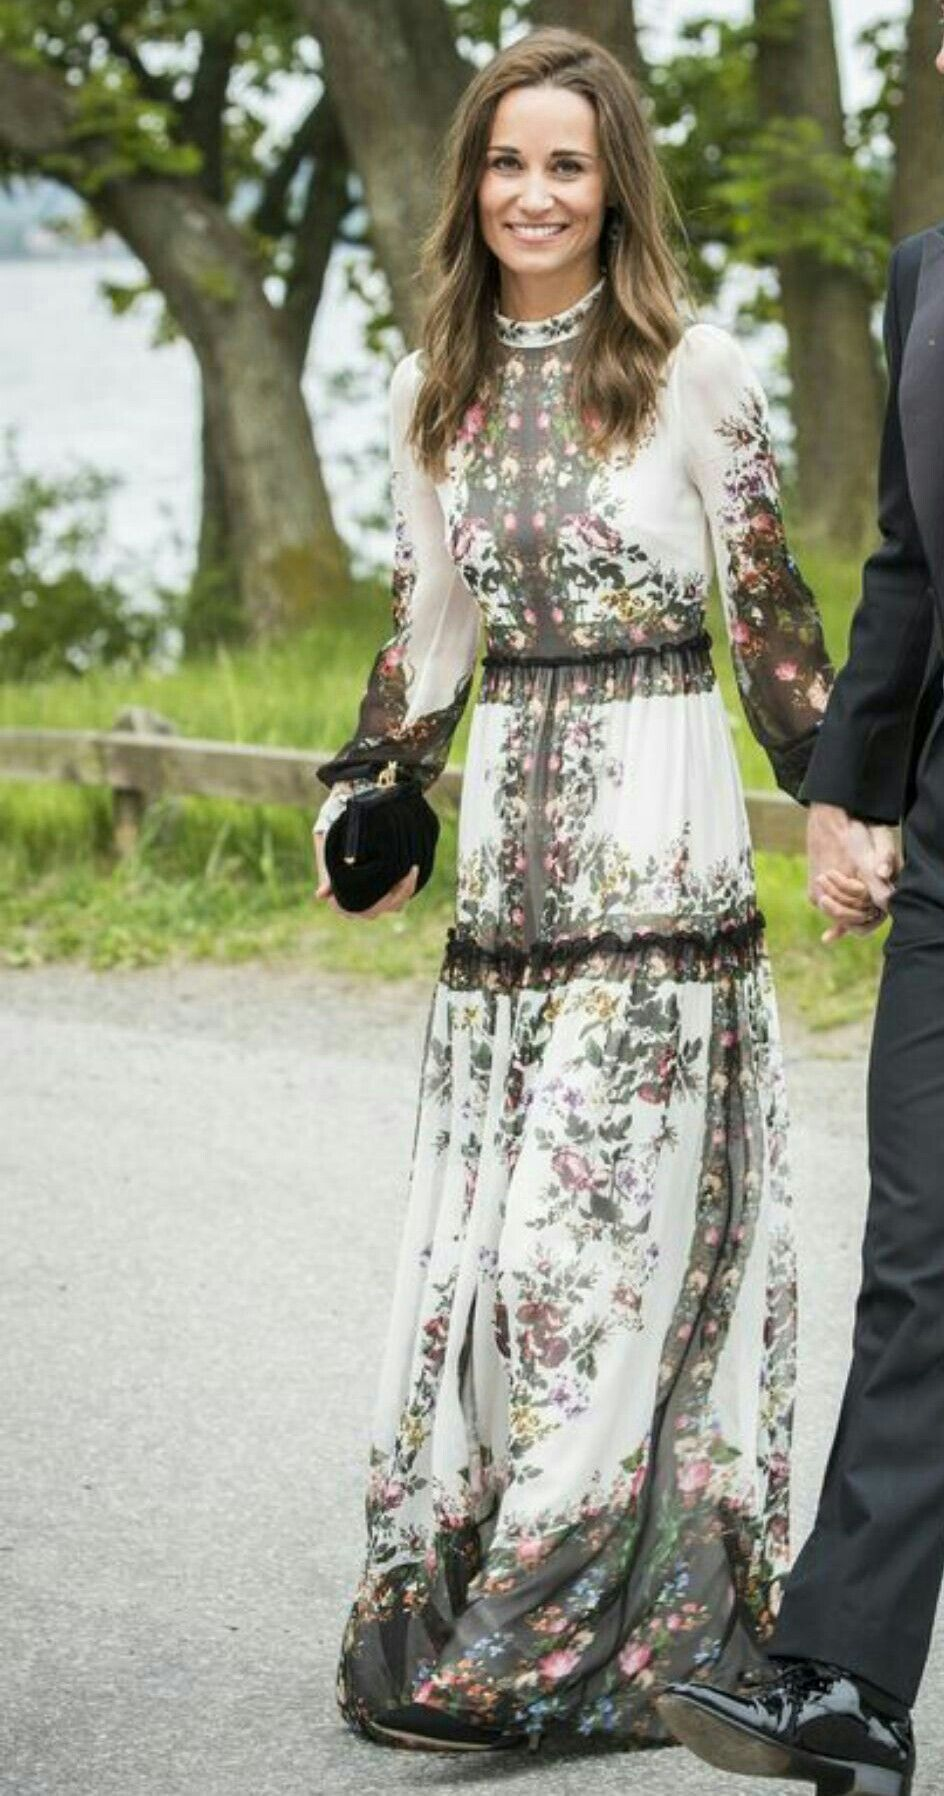 d782a1abef1c2 Pippa Middleton in Erdem